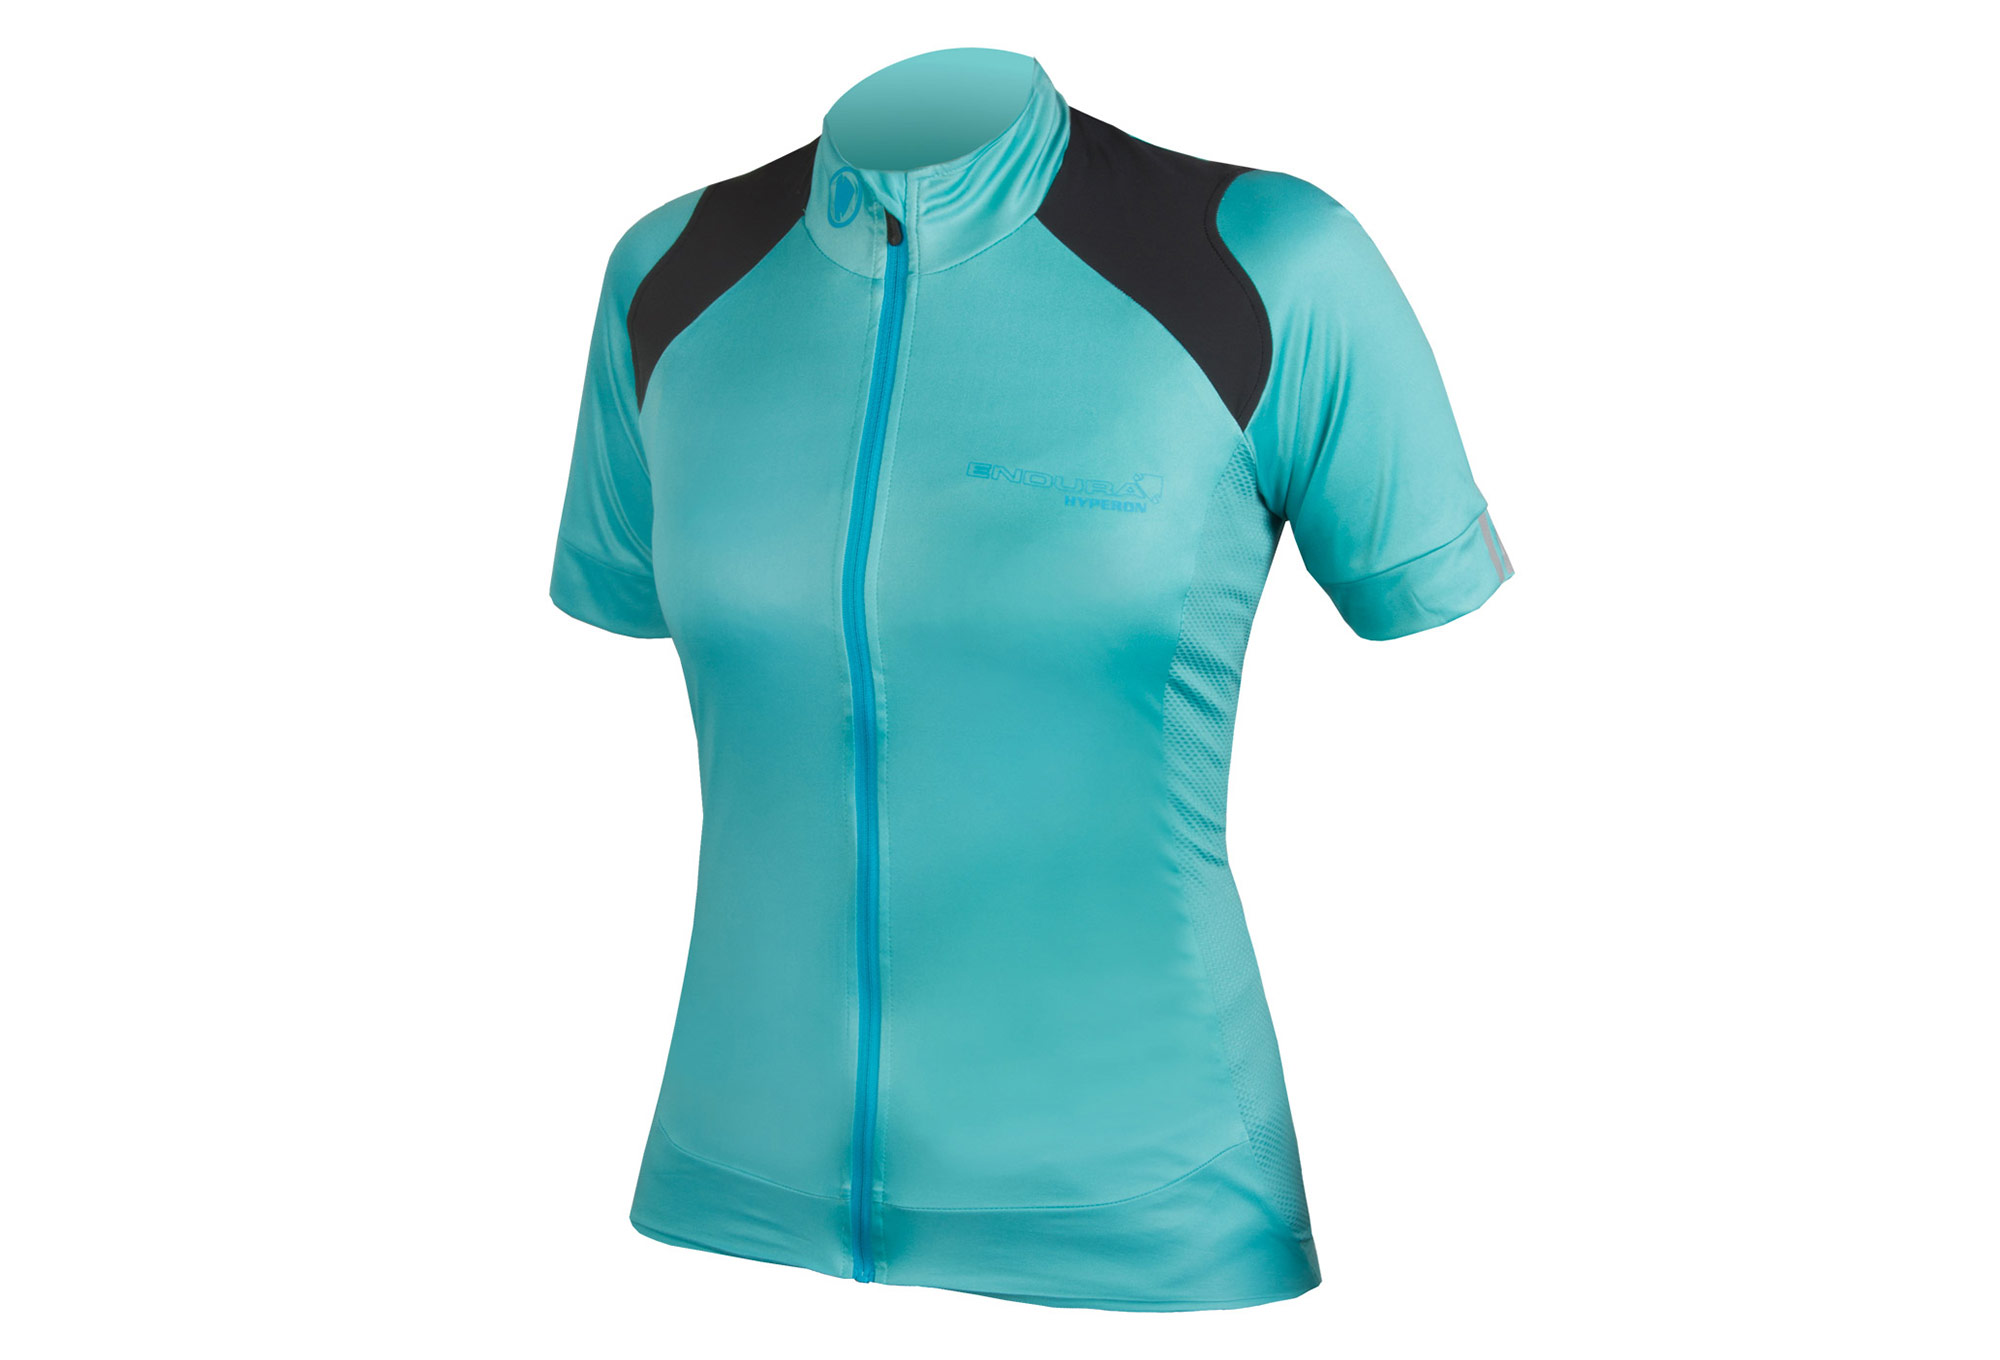 Endura Hyperon Women Short Sleeve Jersey Teal Blue  034cfbb16